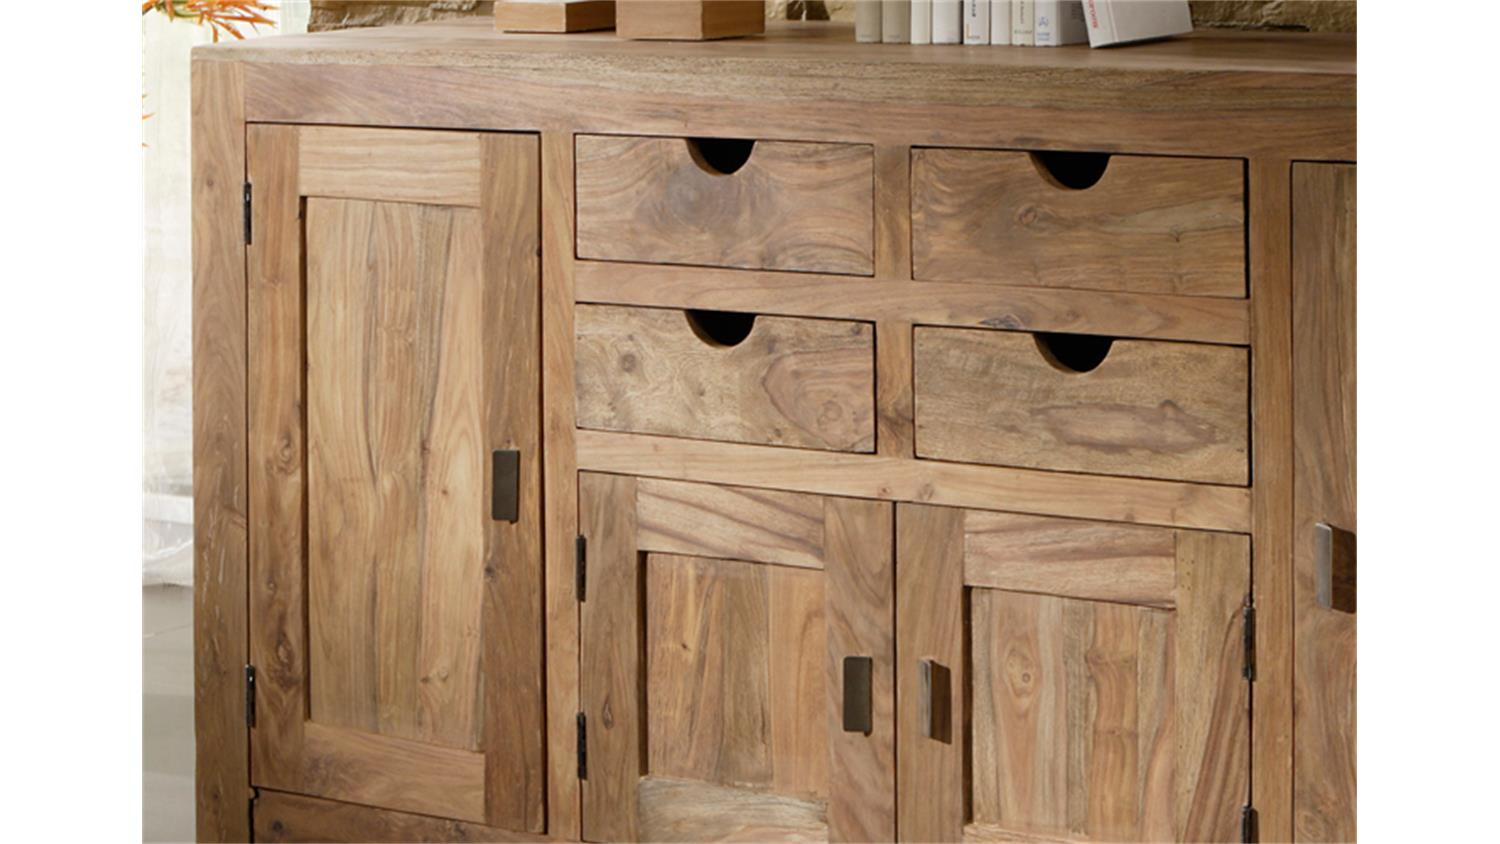 Holzmöbel Massiv Sideboard Yoga Sheesham Massiv Landhausstil Von Wolf Möbel